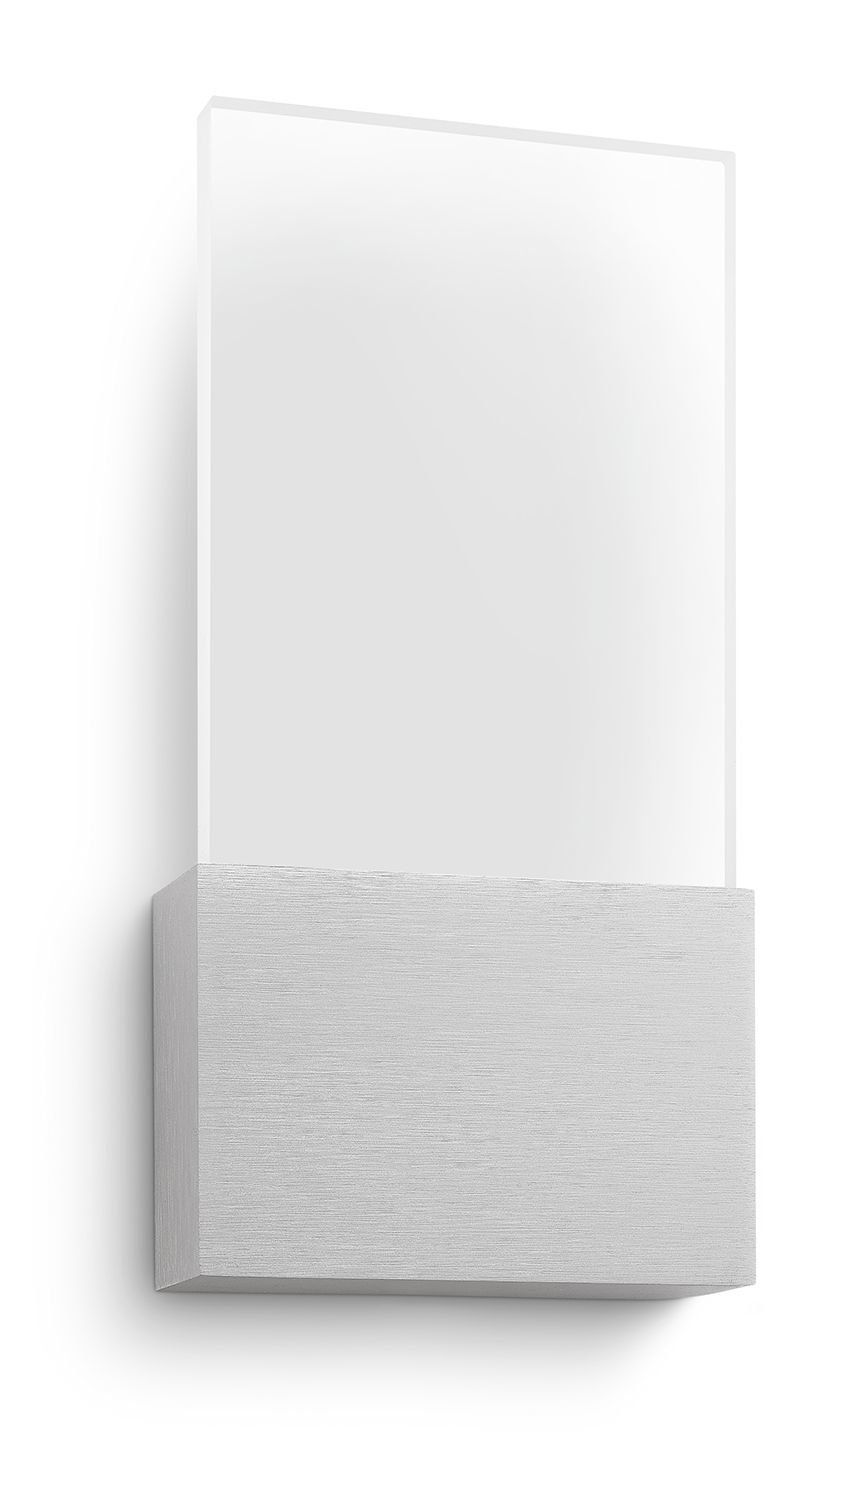 Philips myLiving LED Wall Light Watch Aluminium | Led wall ... on Myliving Outdoors  id=39575